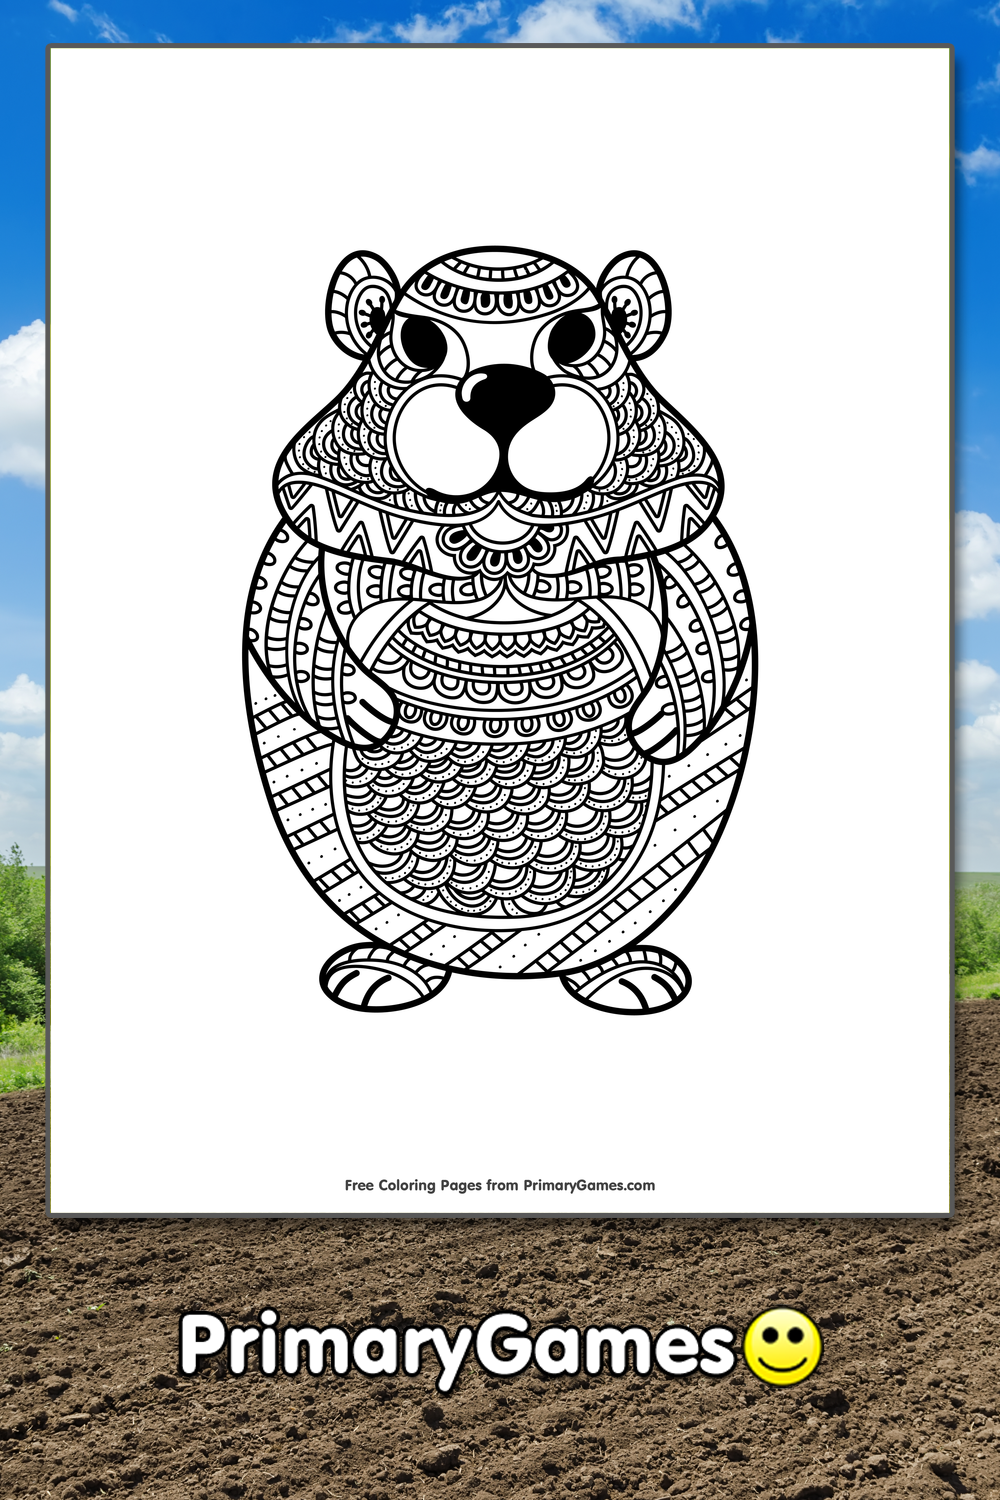 Groundhog Day Coloring Pages | Printable Coloring eBook - PrimaryGames